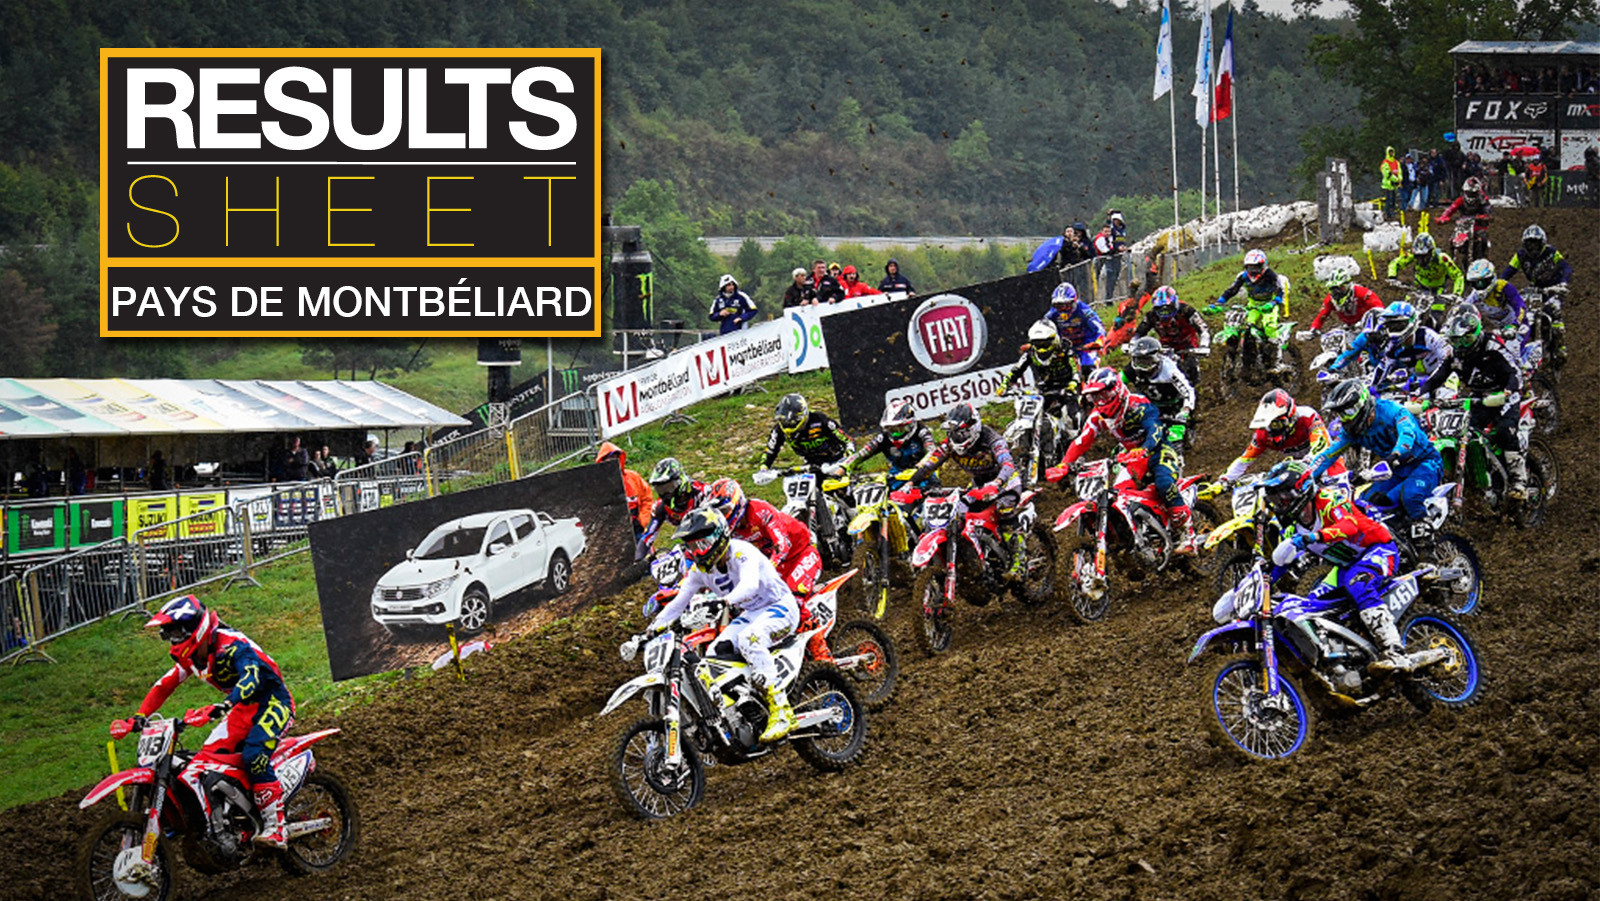 Results Sheet: 2017 MXGP of Pays de Montbéliard - Sunday